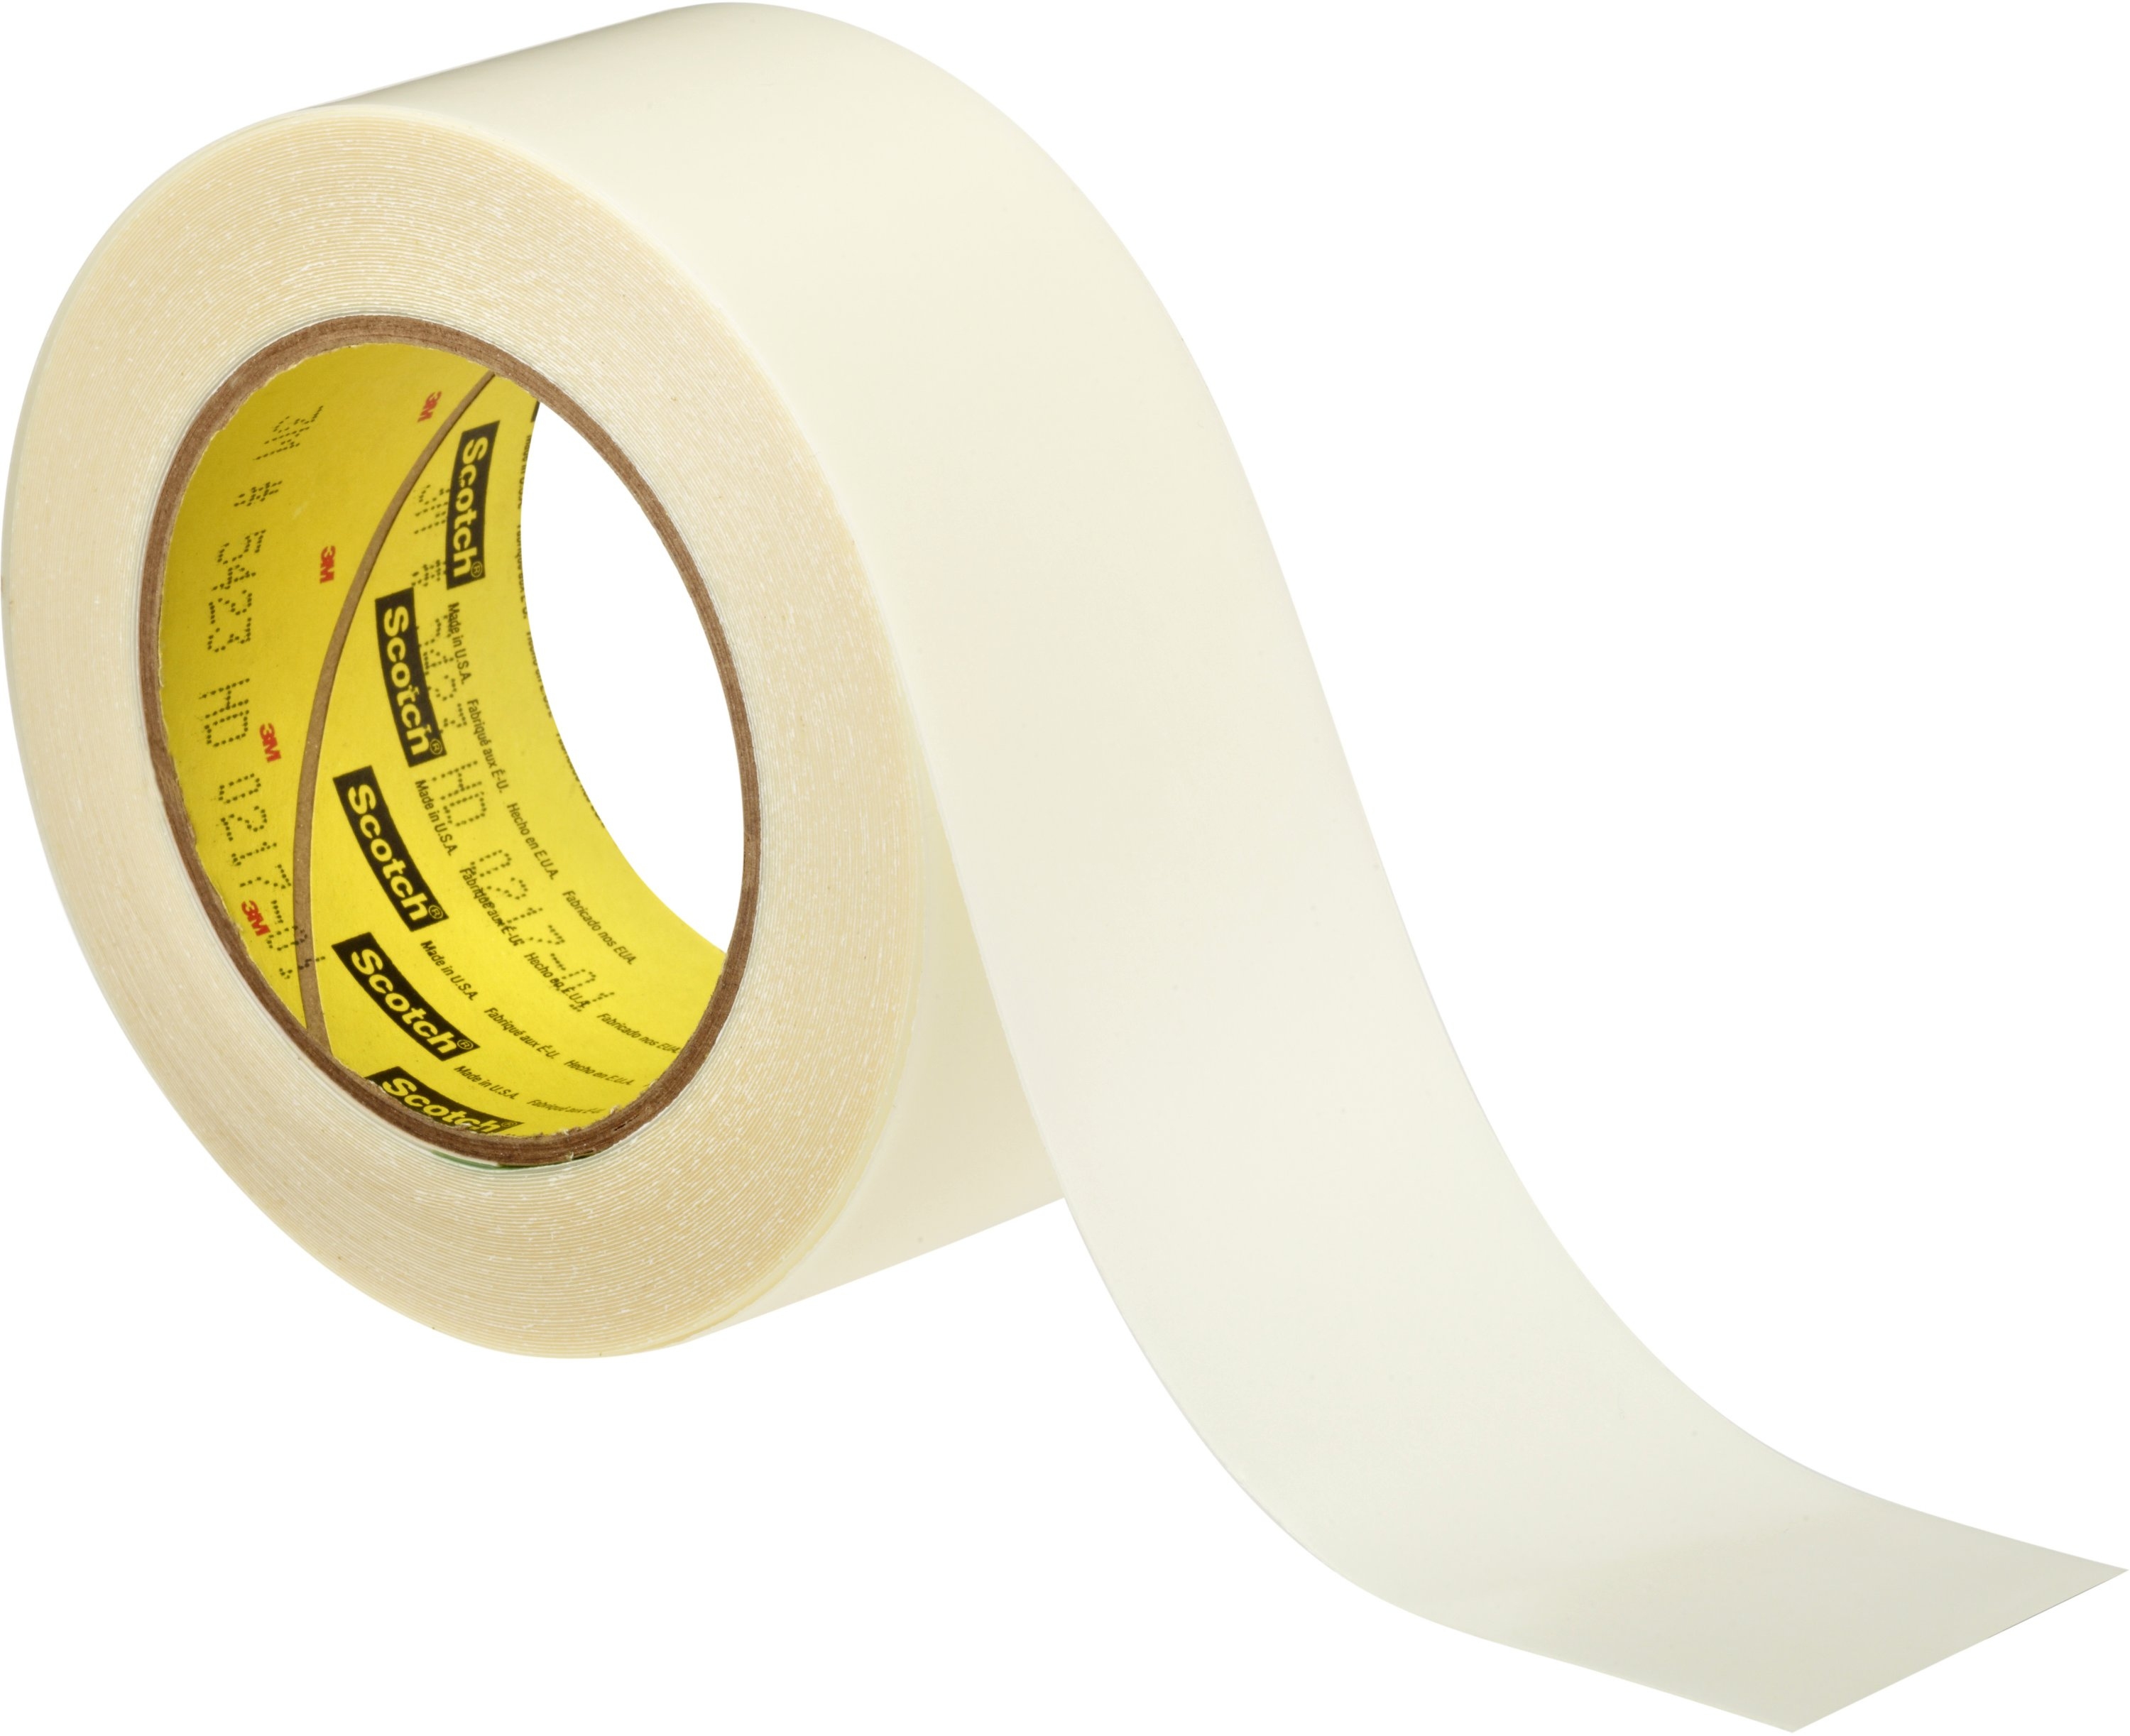 carchivo 72029900/ /Roller with Adhesive Tapes